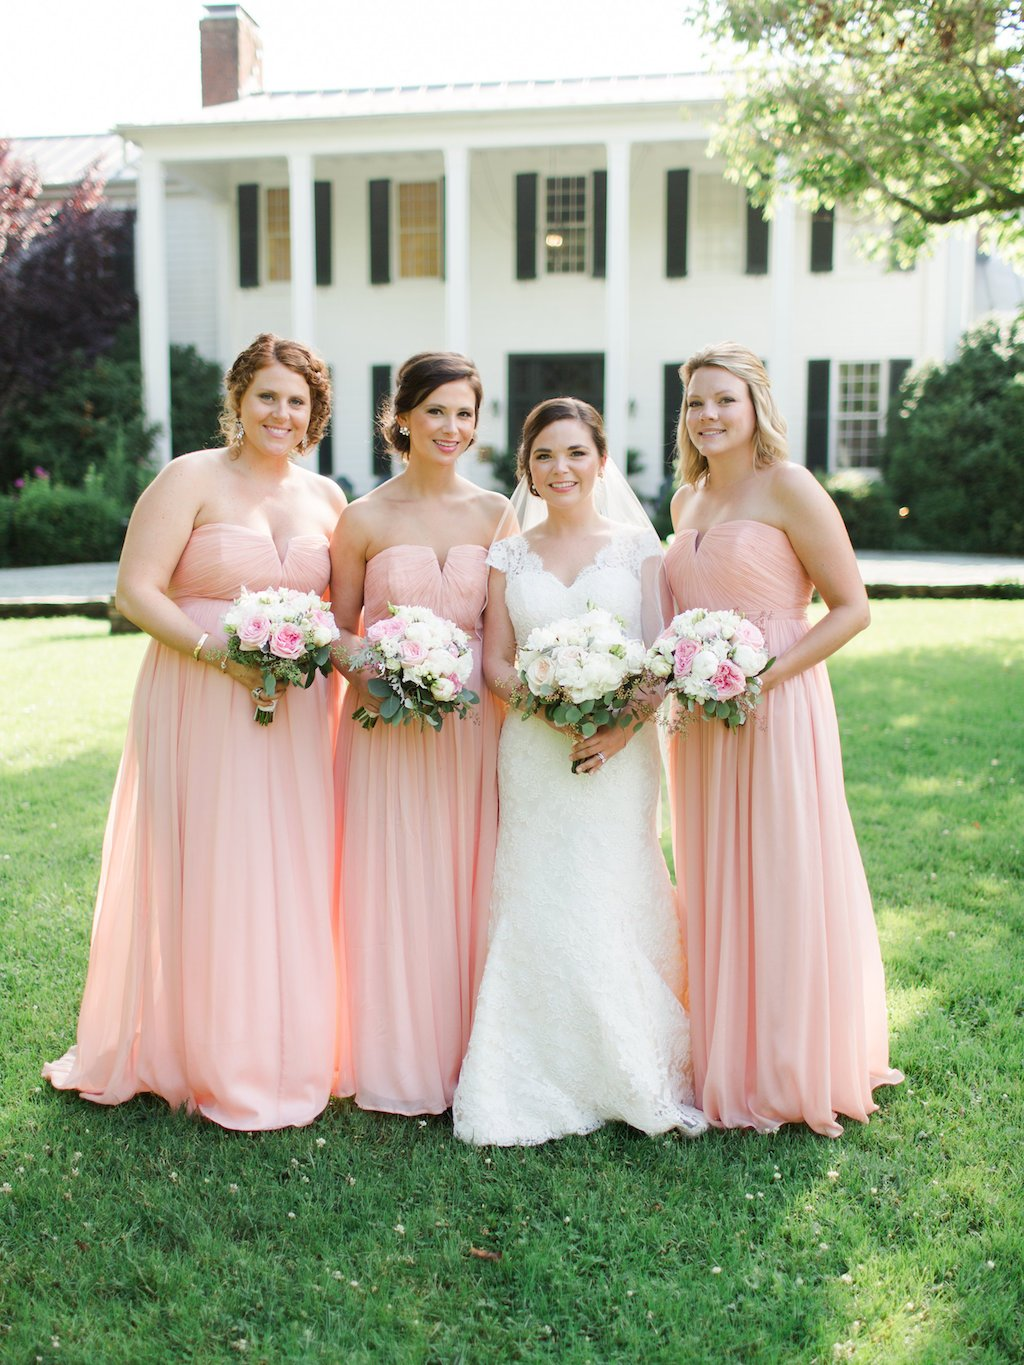 3-24-16-southern-charlottesville-elegant-blush-gold-wedding-10